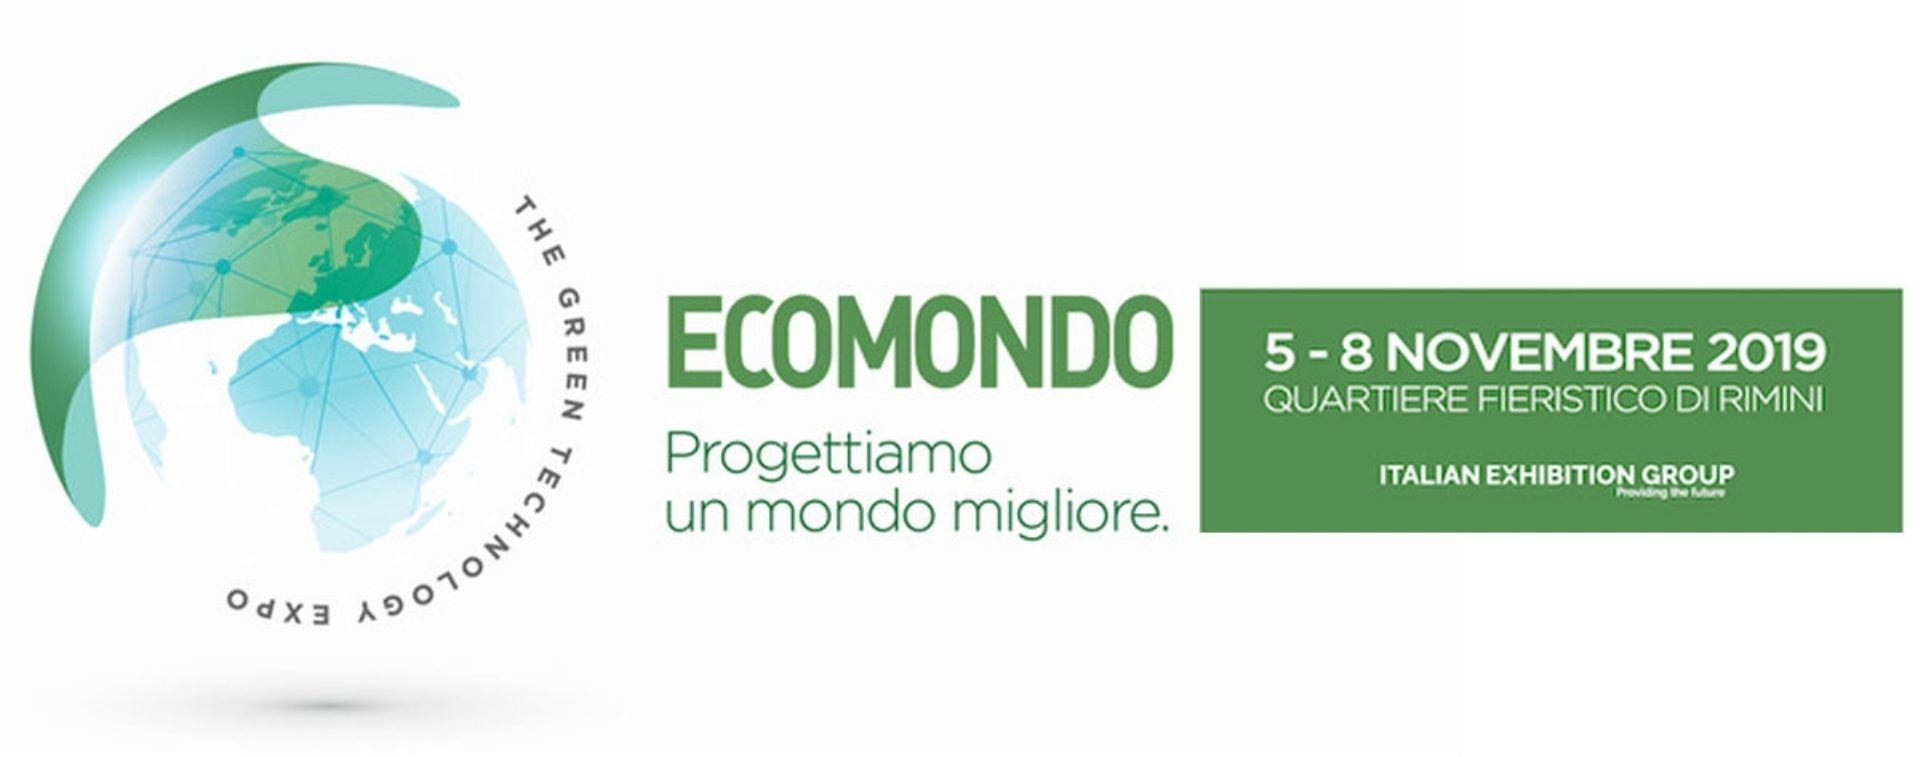 Immagine: Area Science Park a Ecomondo 2019